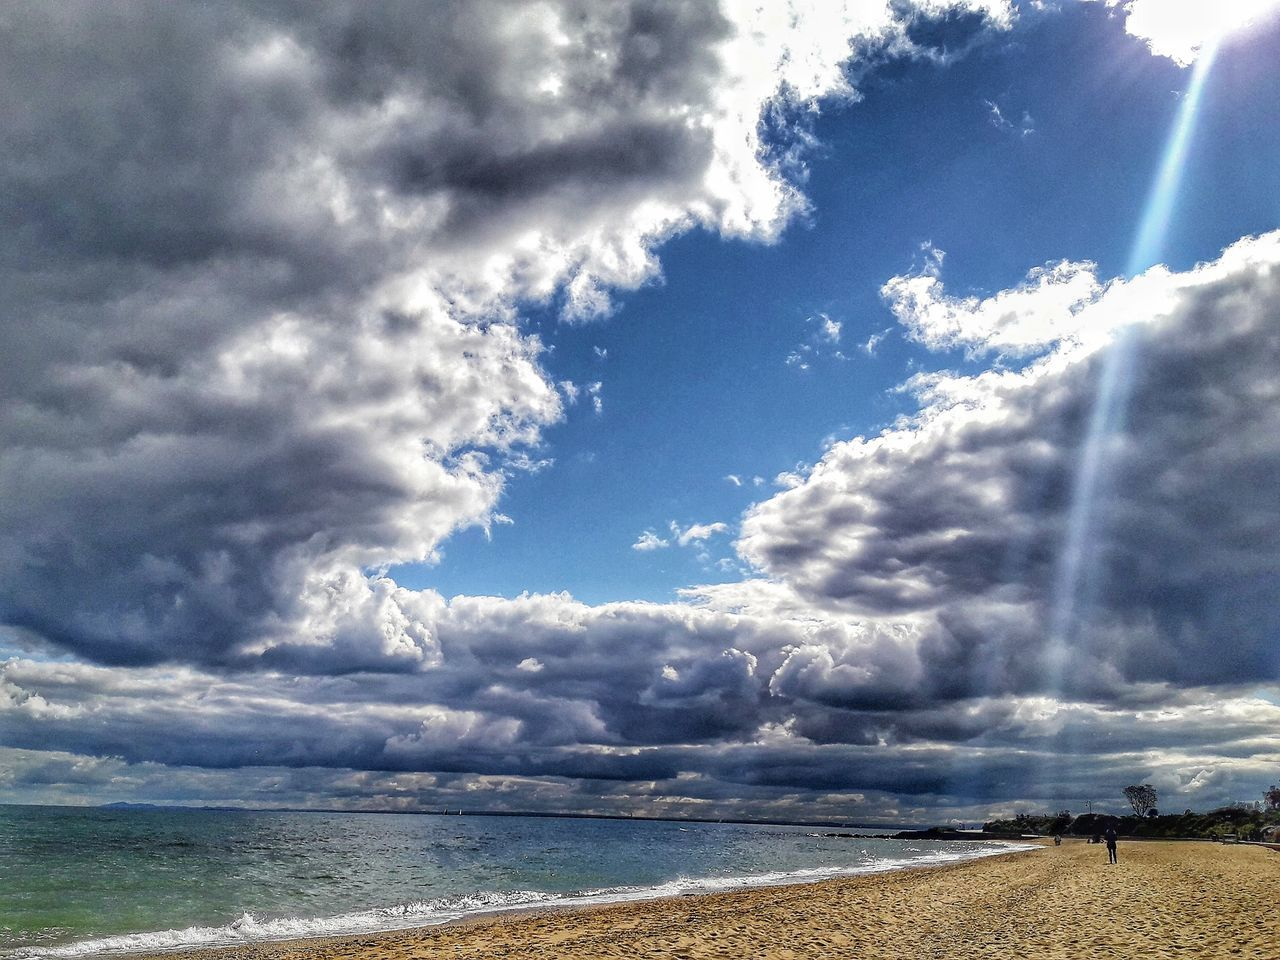 sky, sea, cloud - sky, nature, scenics, tranquility, tranquil scene, day, beauty in nature, beach, horizon over water, water, outdoors, sunlight, idyllic, no people, sand, vacations